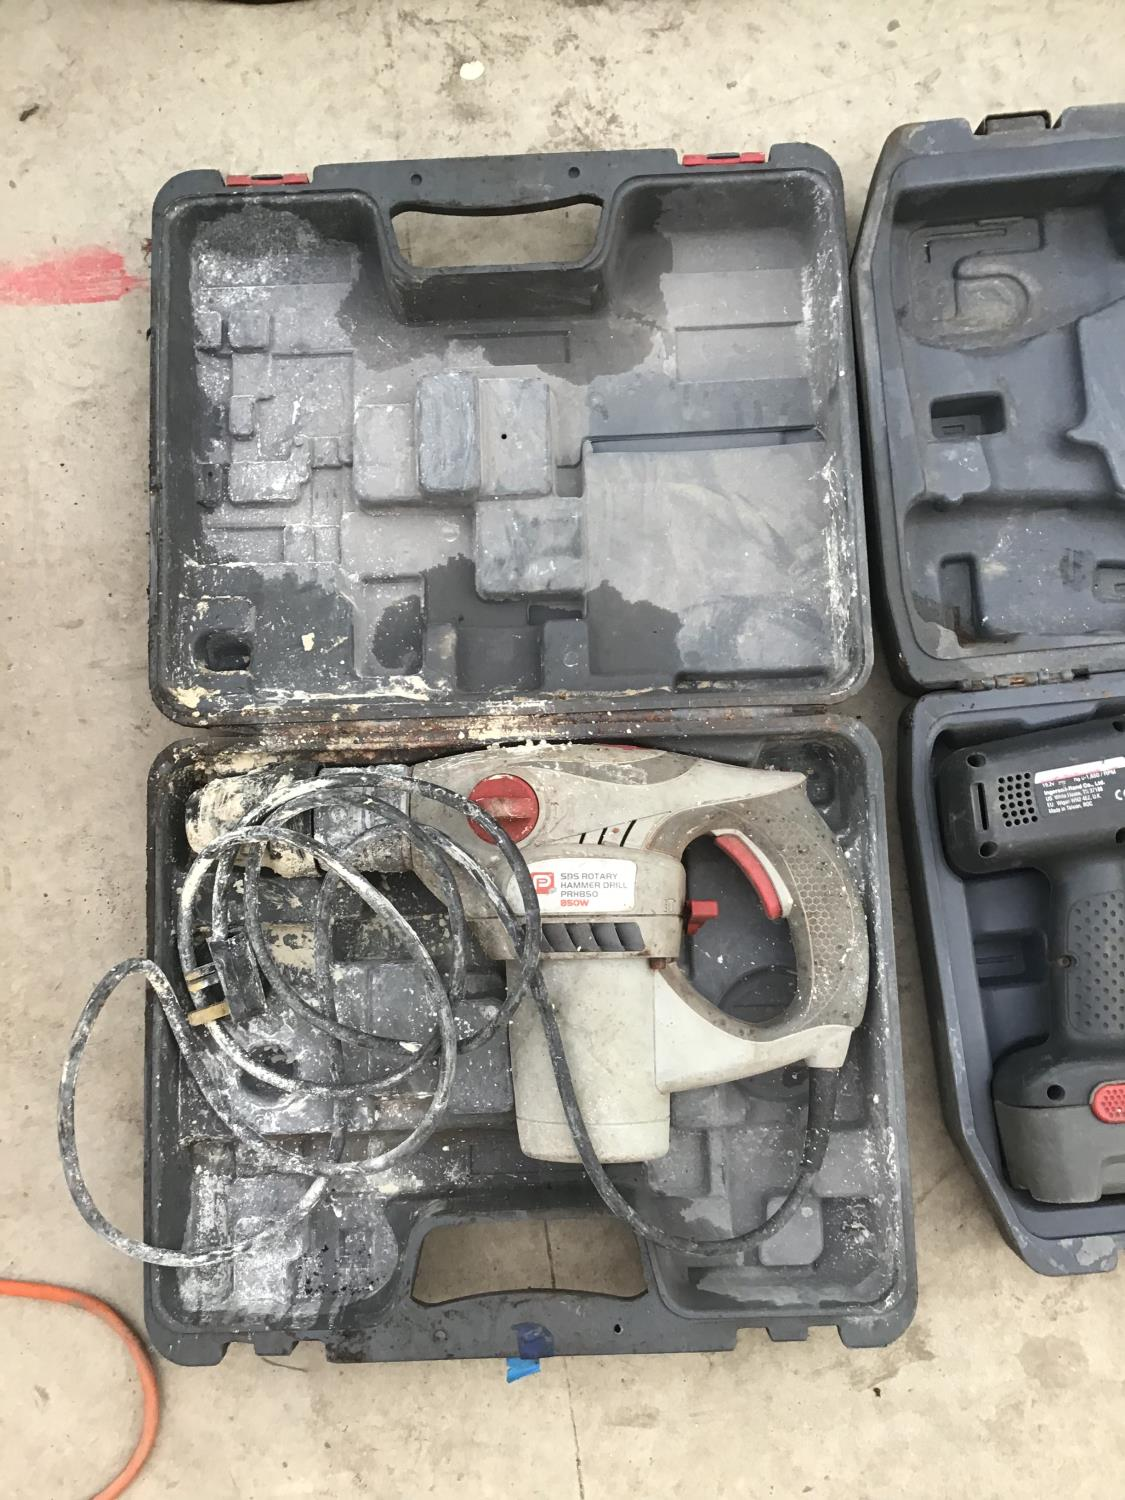 Lot 55 - TWO CASED DRILLS ONE A CORDLESS WITH BATTERY AND CHARGER AND ONE A PERFORMANCE SDS ROTARY HAMMER